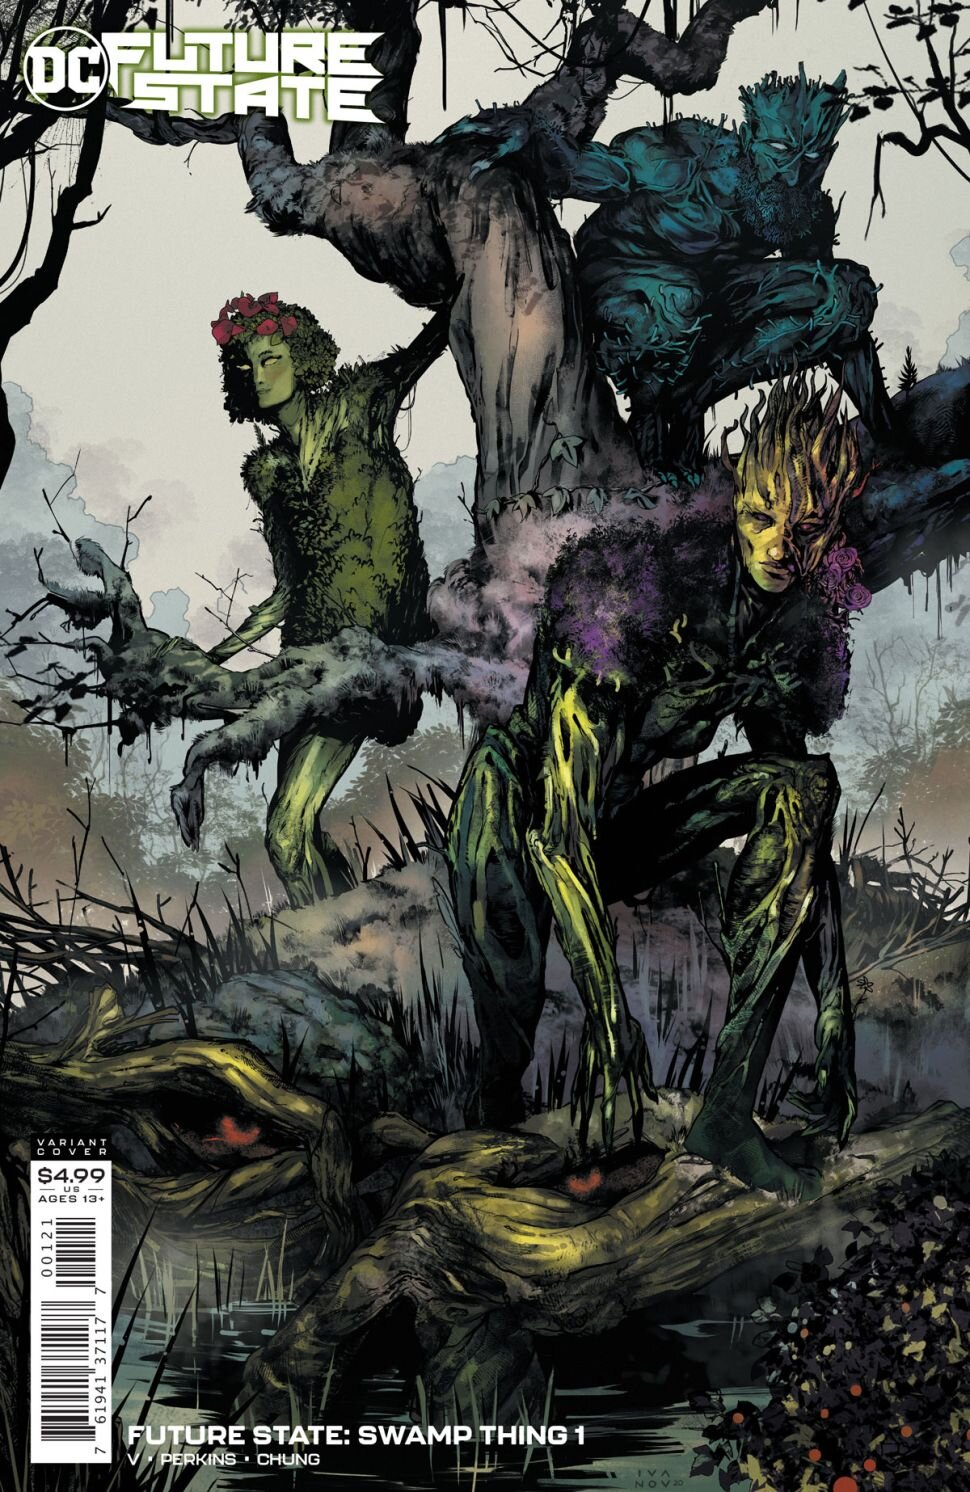 """SYNOPSIS:  """"InFuture State: Swamp Thing #1,from the ashes of a terrible war, life blooms anew in Swamp Thing's image,"""" reads DC's official description. """"The remnants of humanity lie in hiding, forever in the shadow of the green god who now rules the planet.   When the new avatar of the Green uncovers a stray human, a rebellion is revealed! But this Swamp Thing is no stranger to violent ends, and neither are his creations. If it's war humanity wants, it will be at their doorstep—and Swamp Thing will never be the same!"""""""